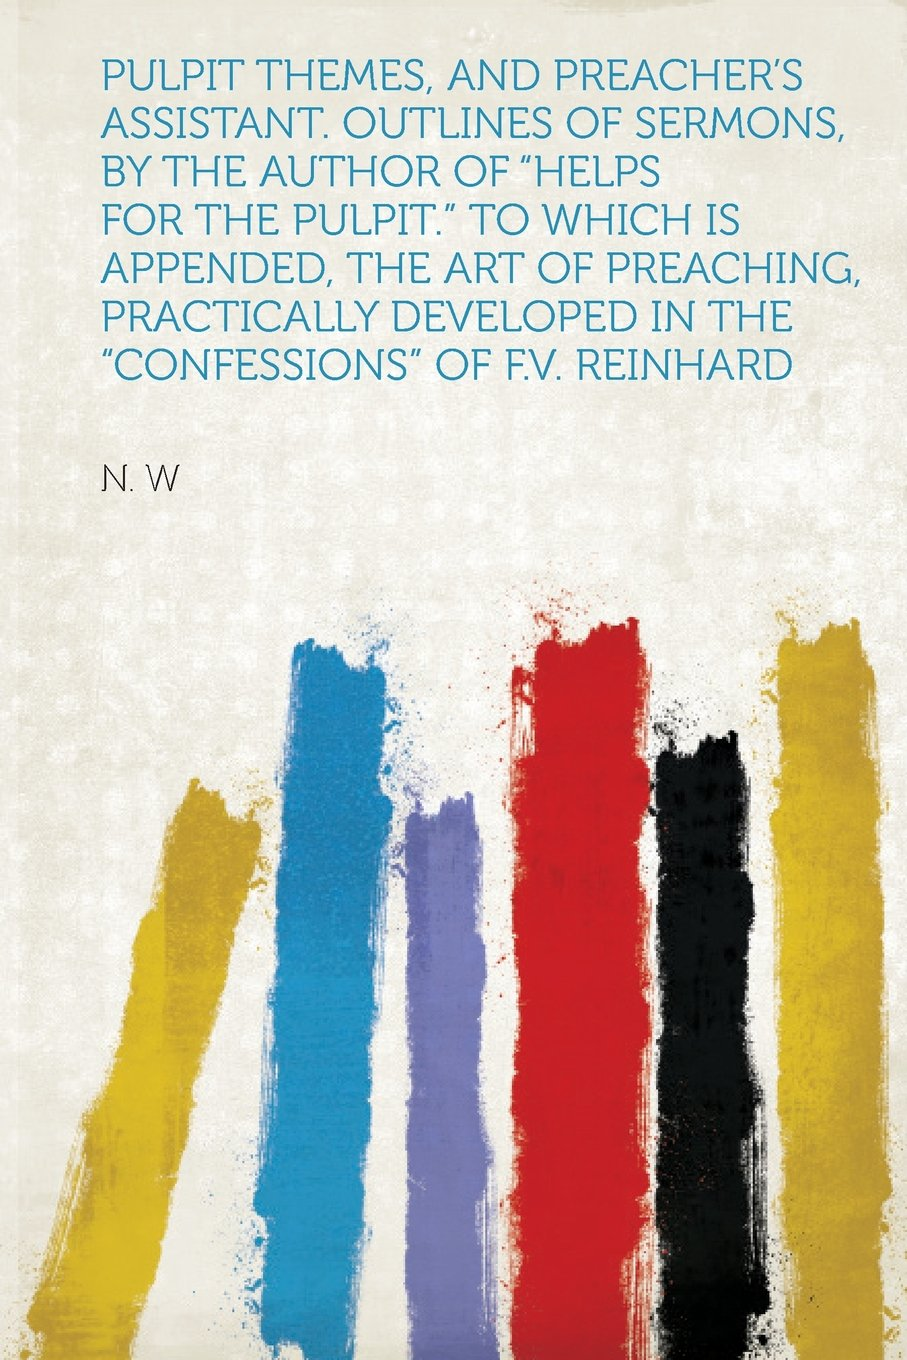 Read Online Pulpit Themes, and Preacher's Assistant. Outlines of Sermons, by the Author of Helps for the Pulpit. to Which Is Appended, the Art of Preaching, Pract PDF